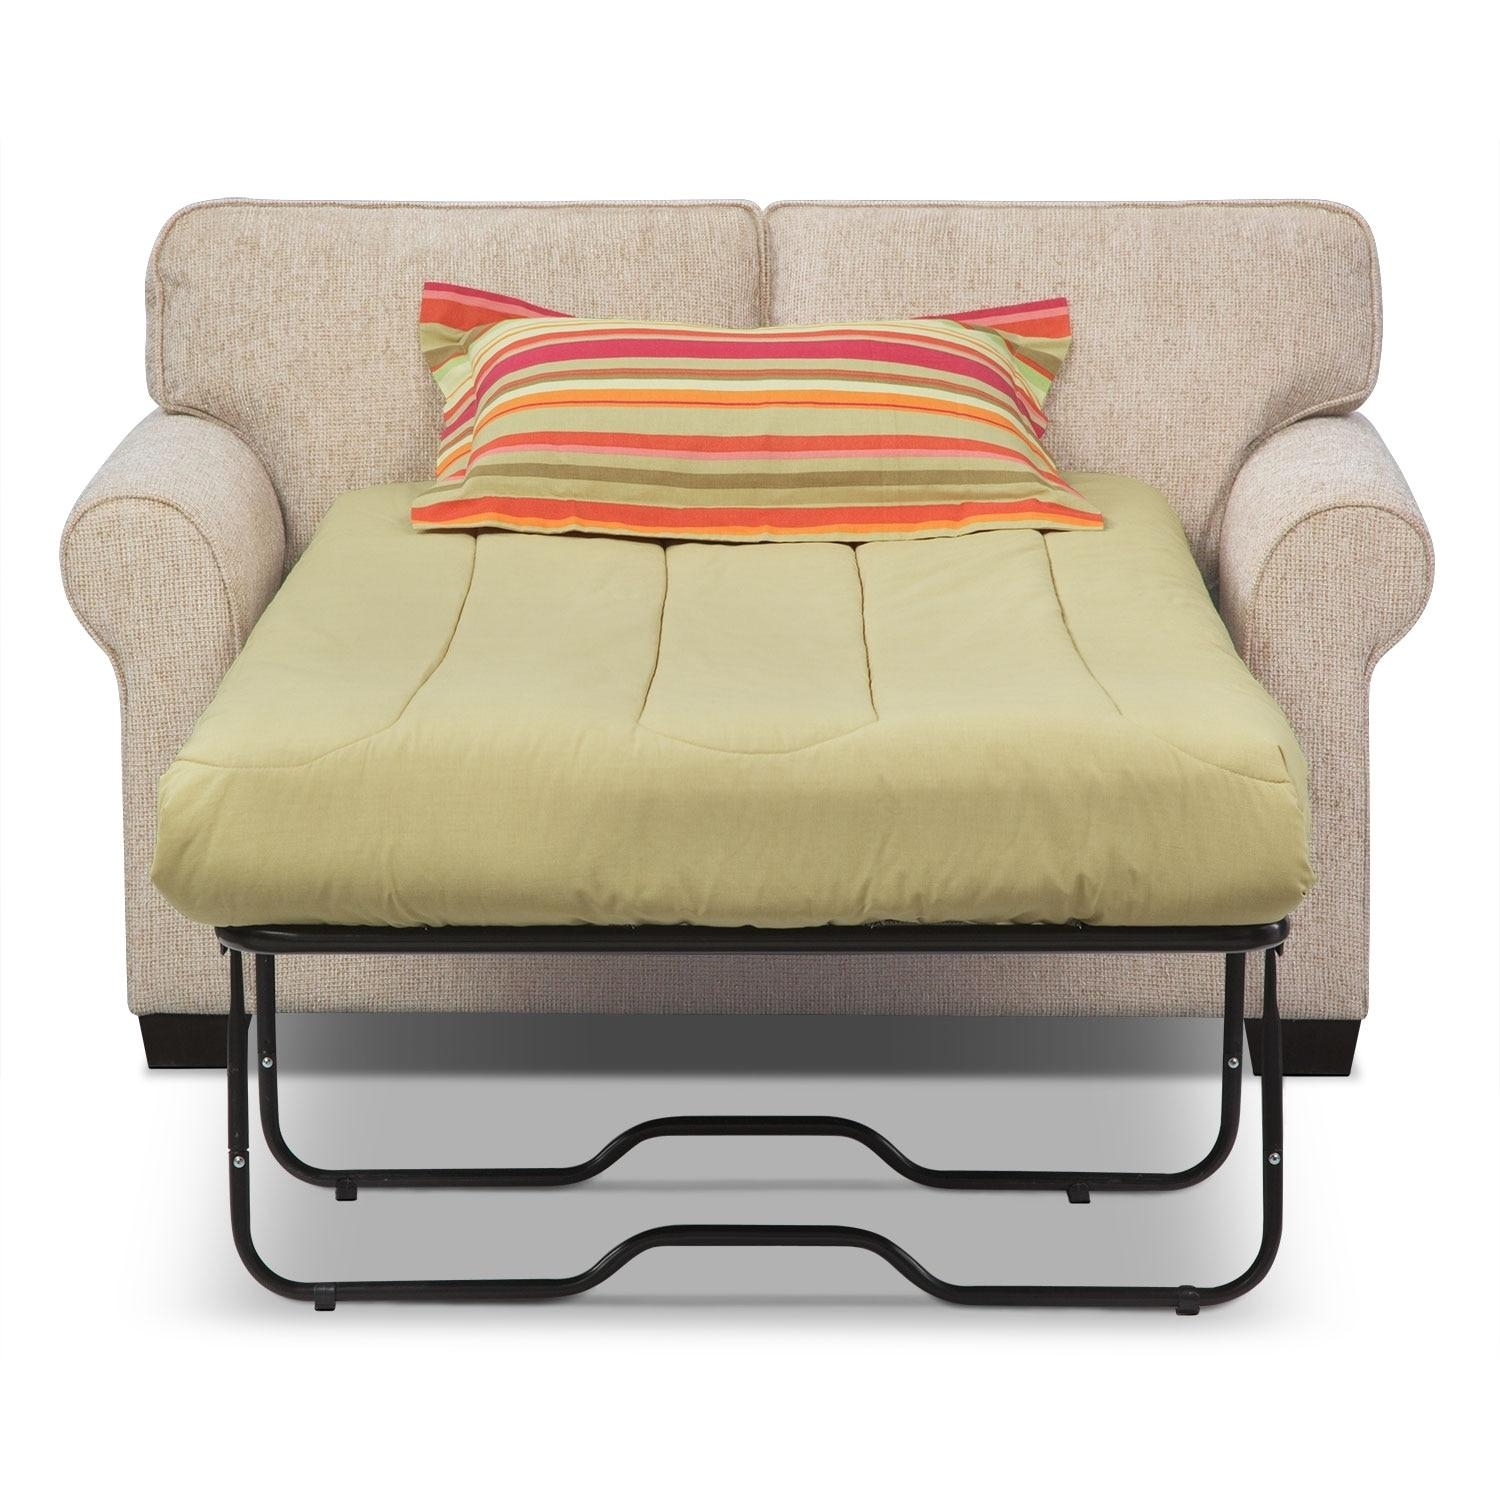 twin sleeper sofa chair table that goes under 20 best collection of chairs ideas